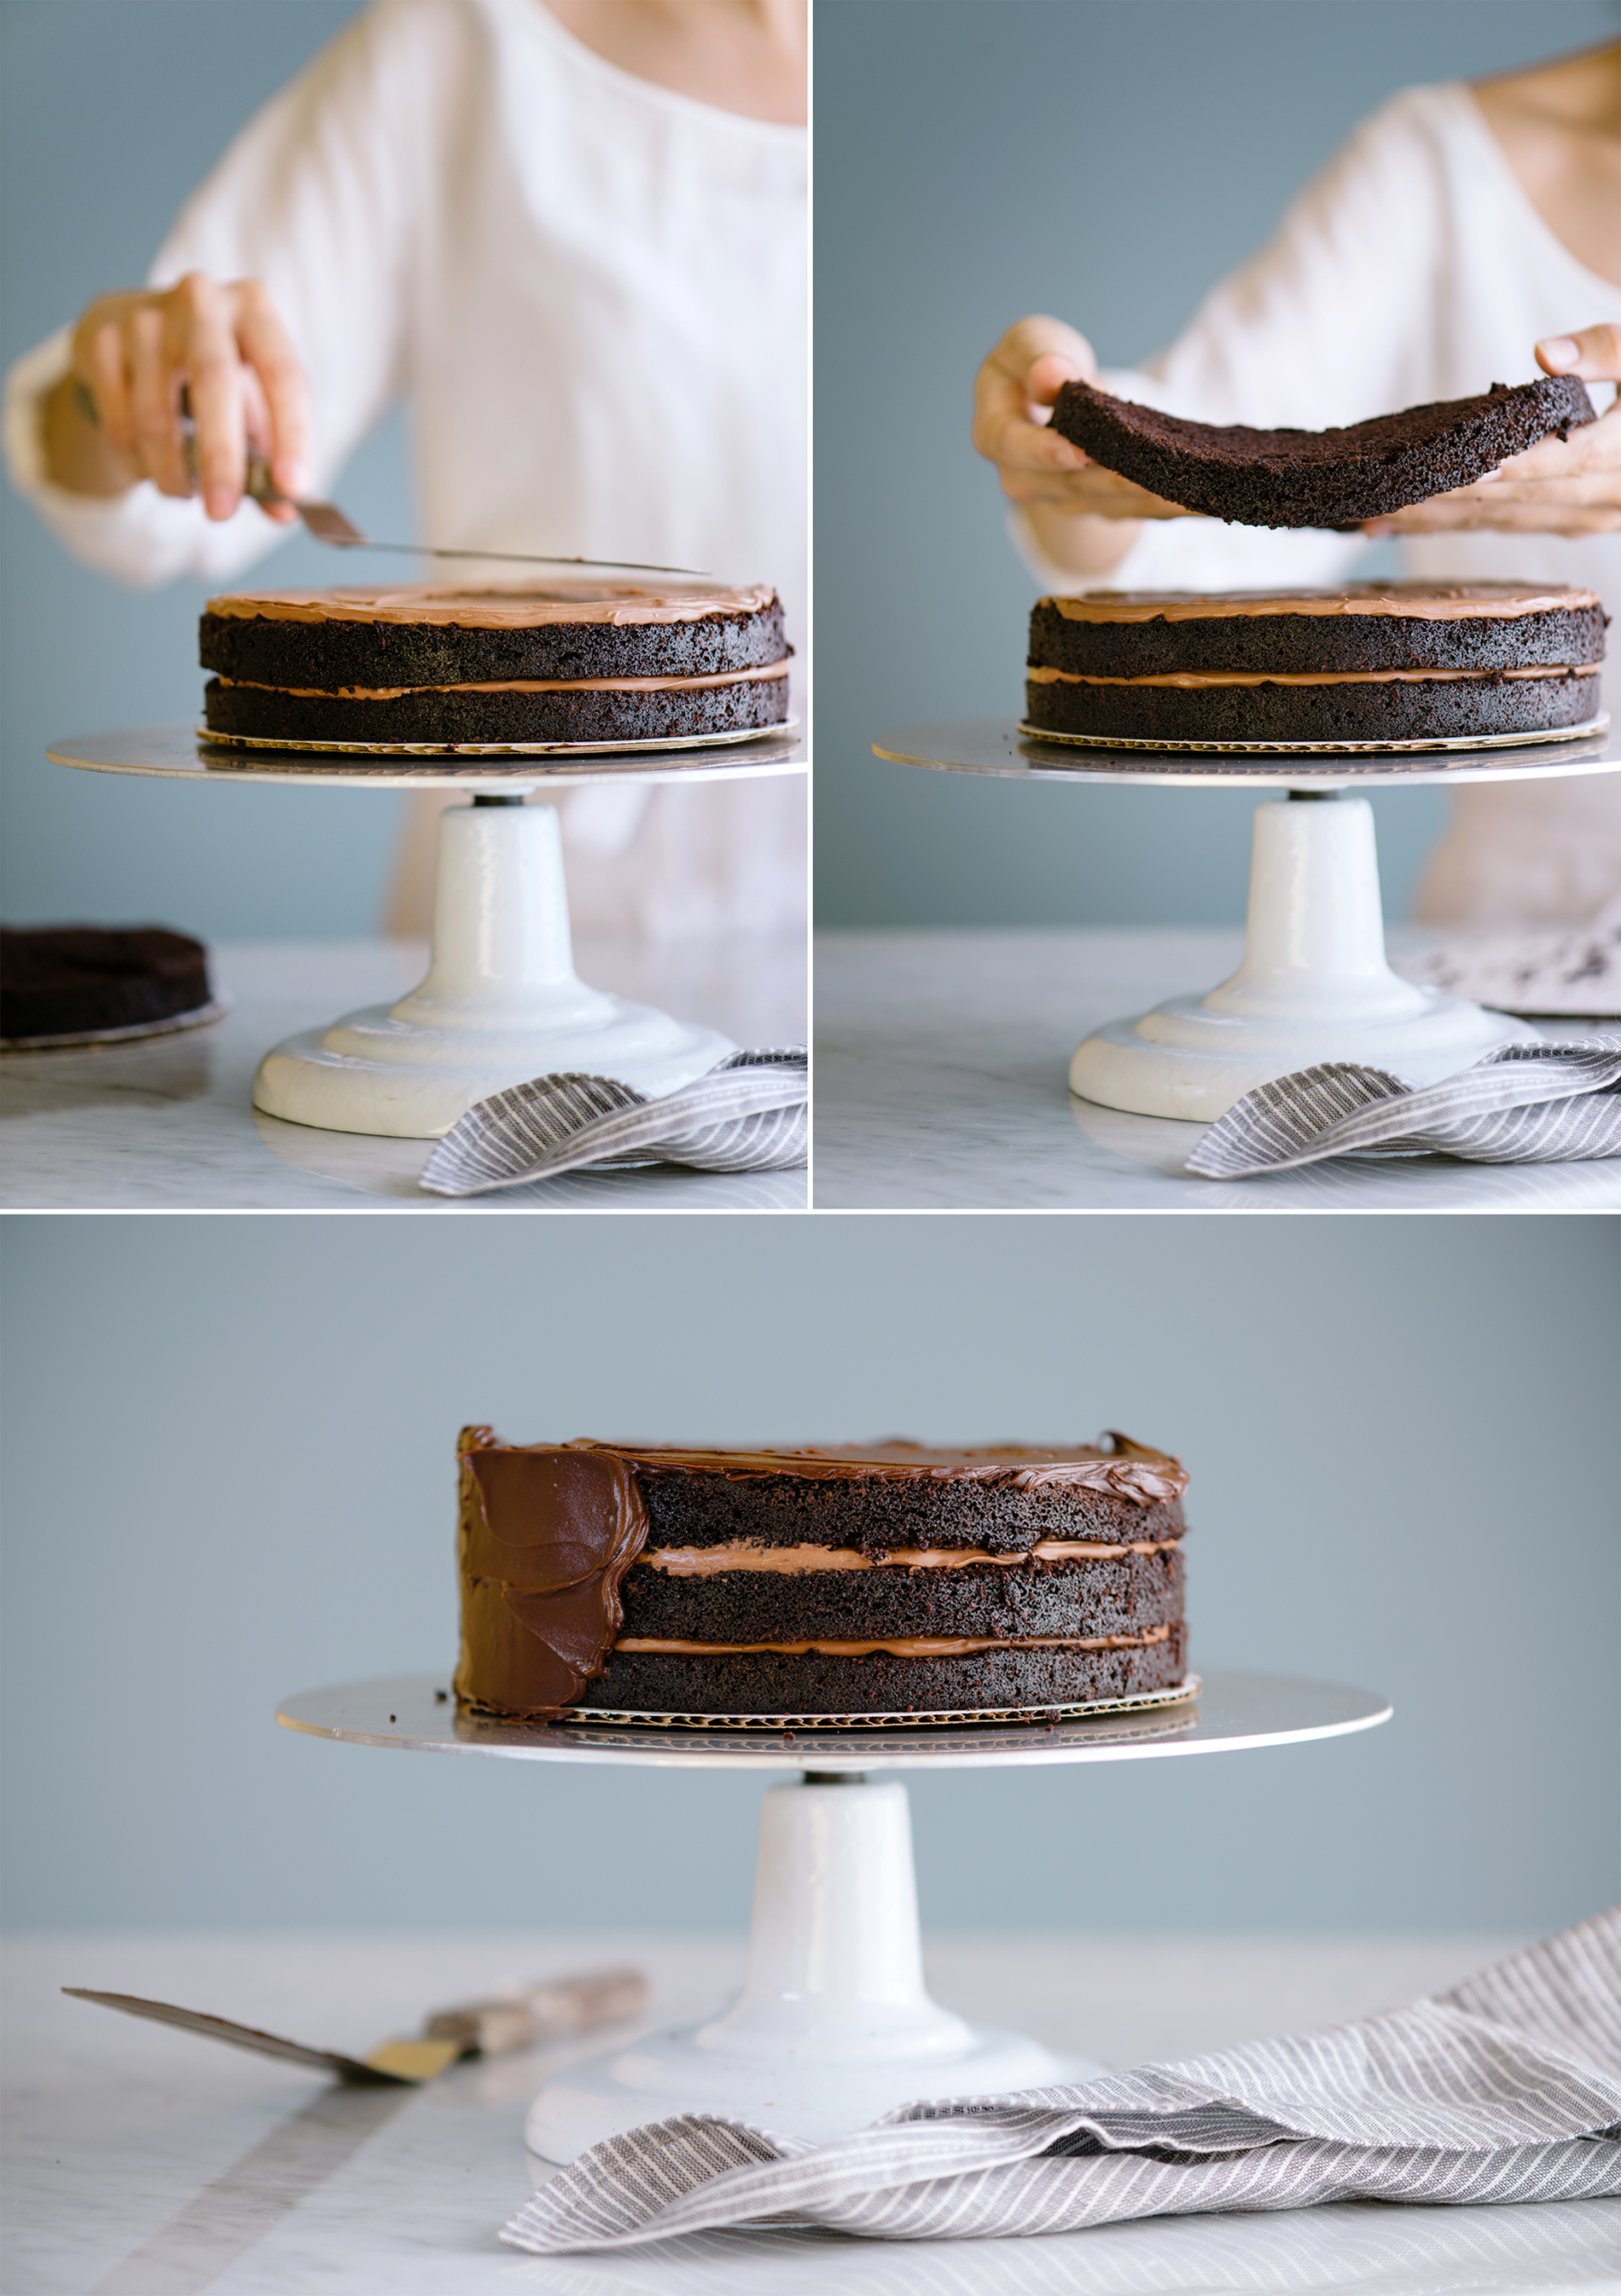 Chocolate Ganache Celebration Cake Tutorial | Now, Forager | Teresa Floyd Photography